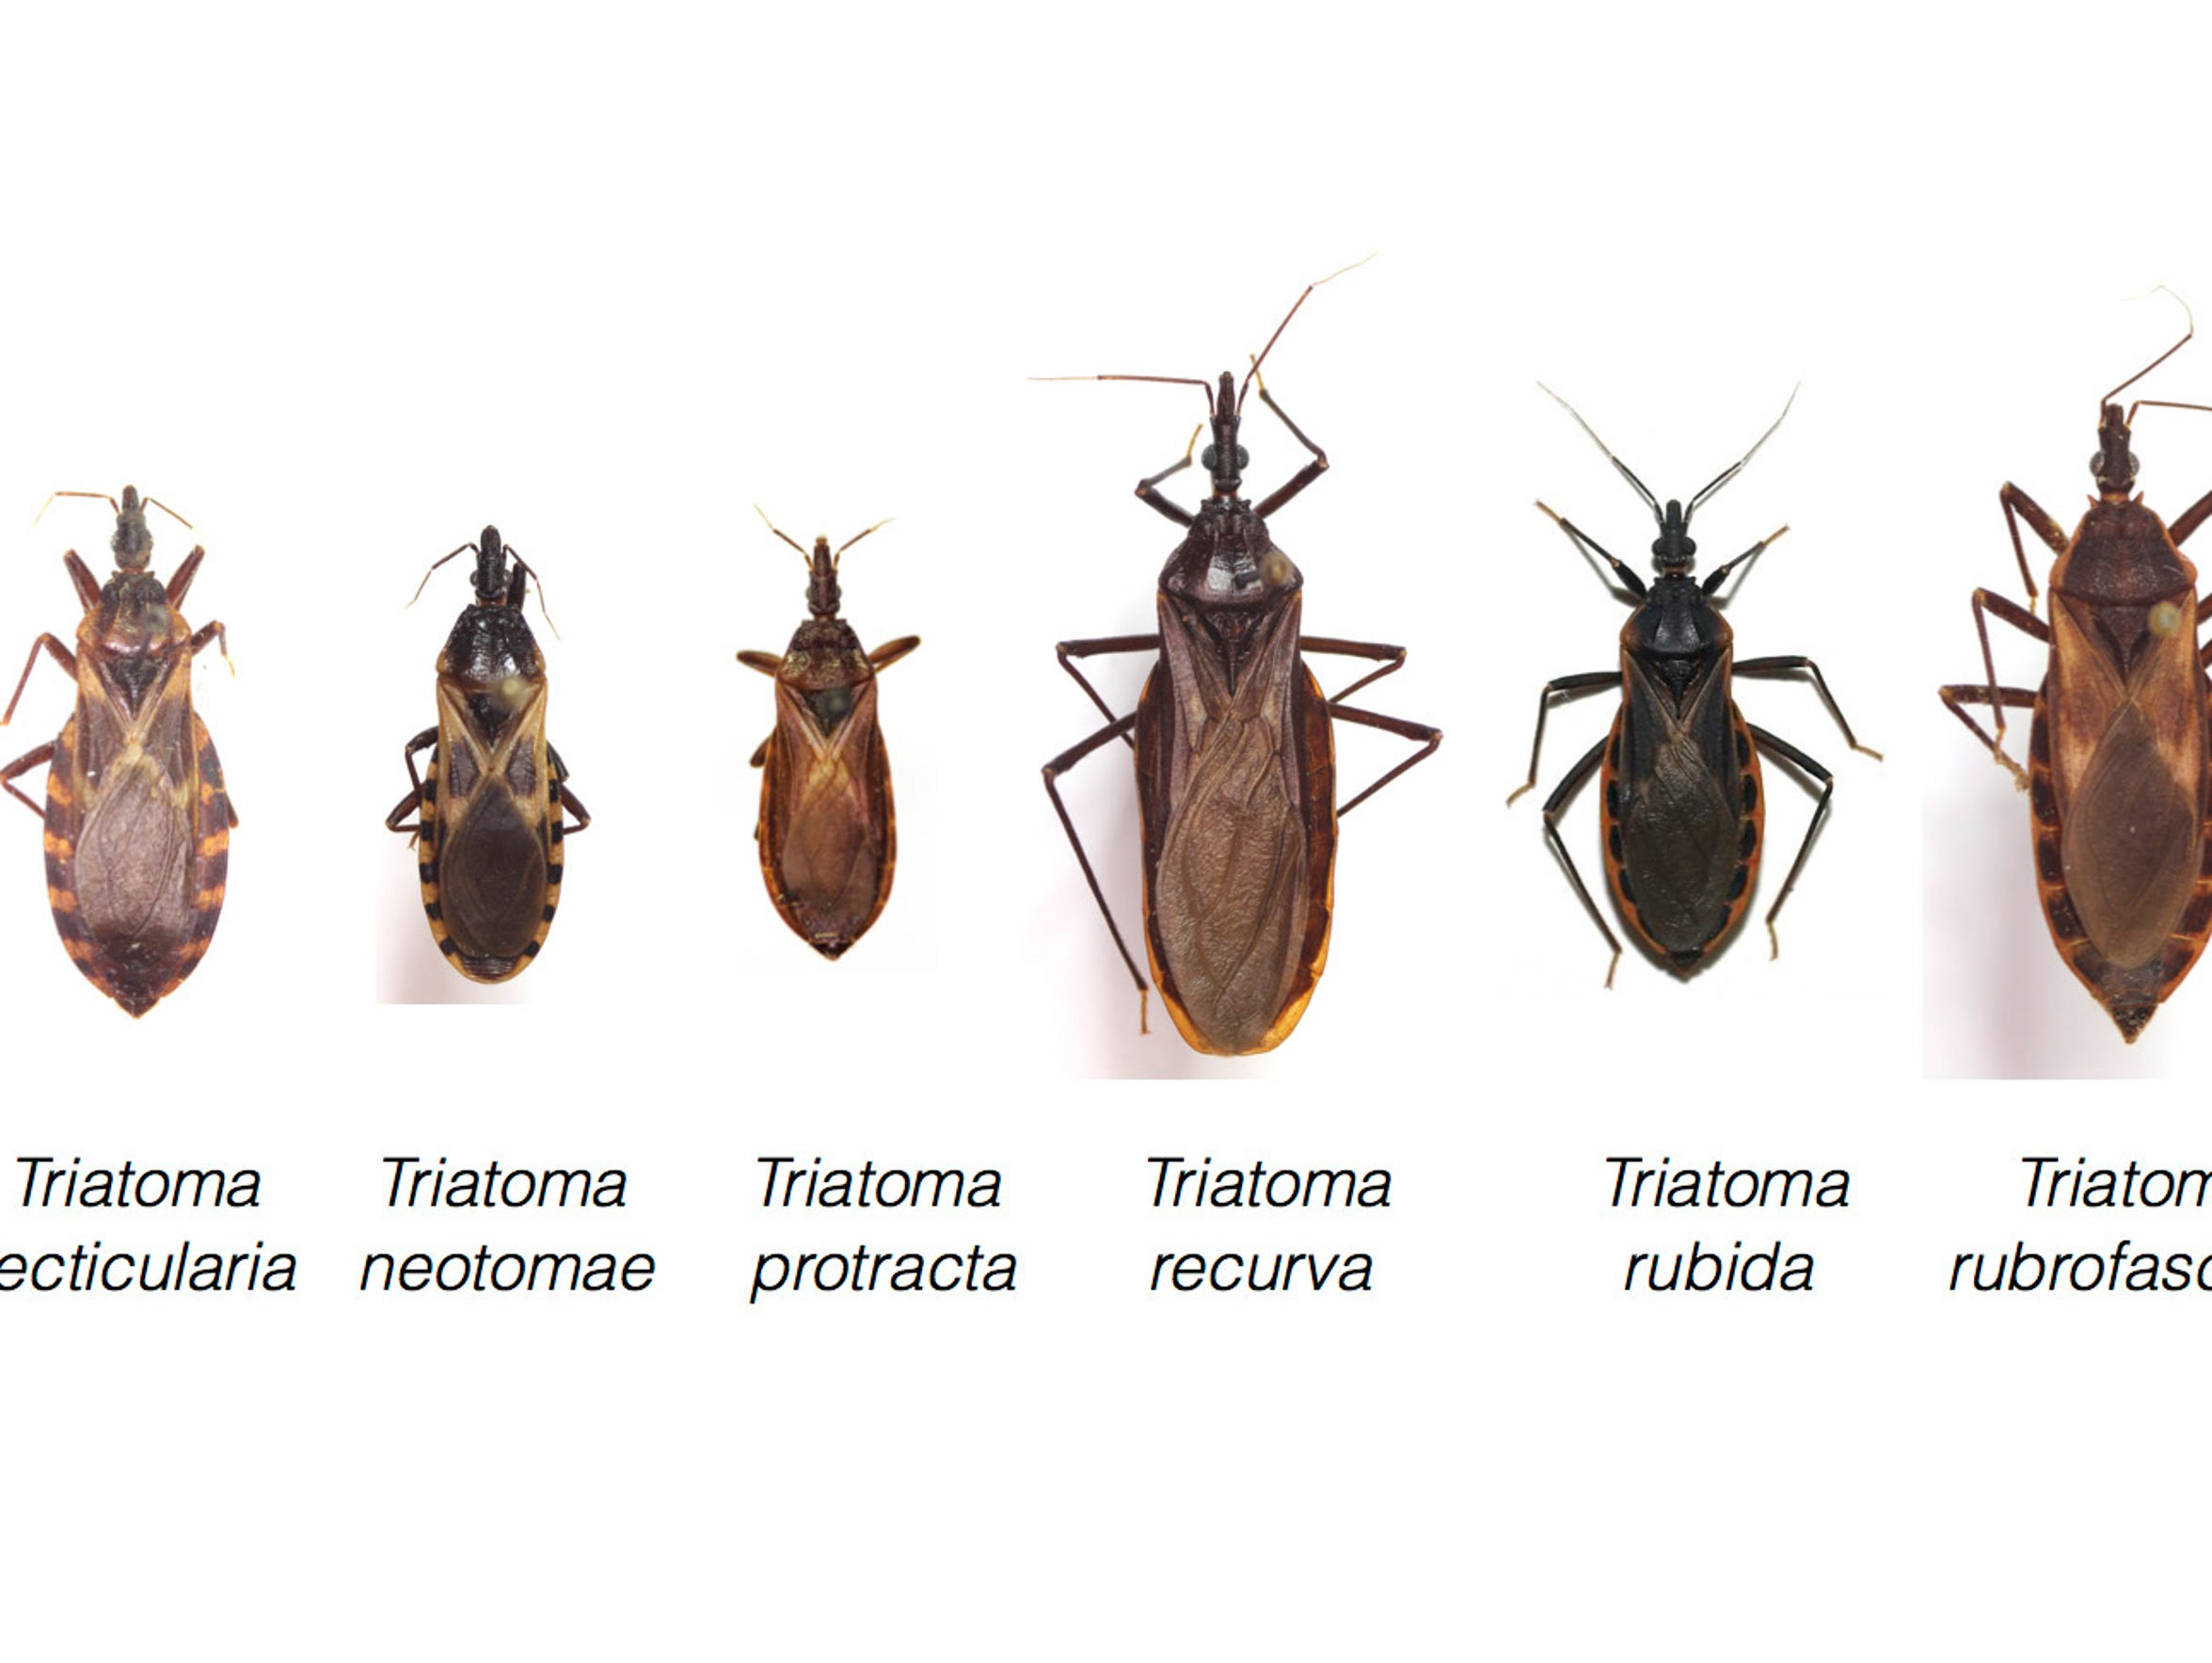 There are many types of kissing bugs, but they all potentially carry the deadly Chagas parasite.